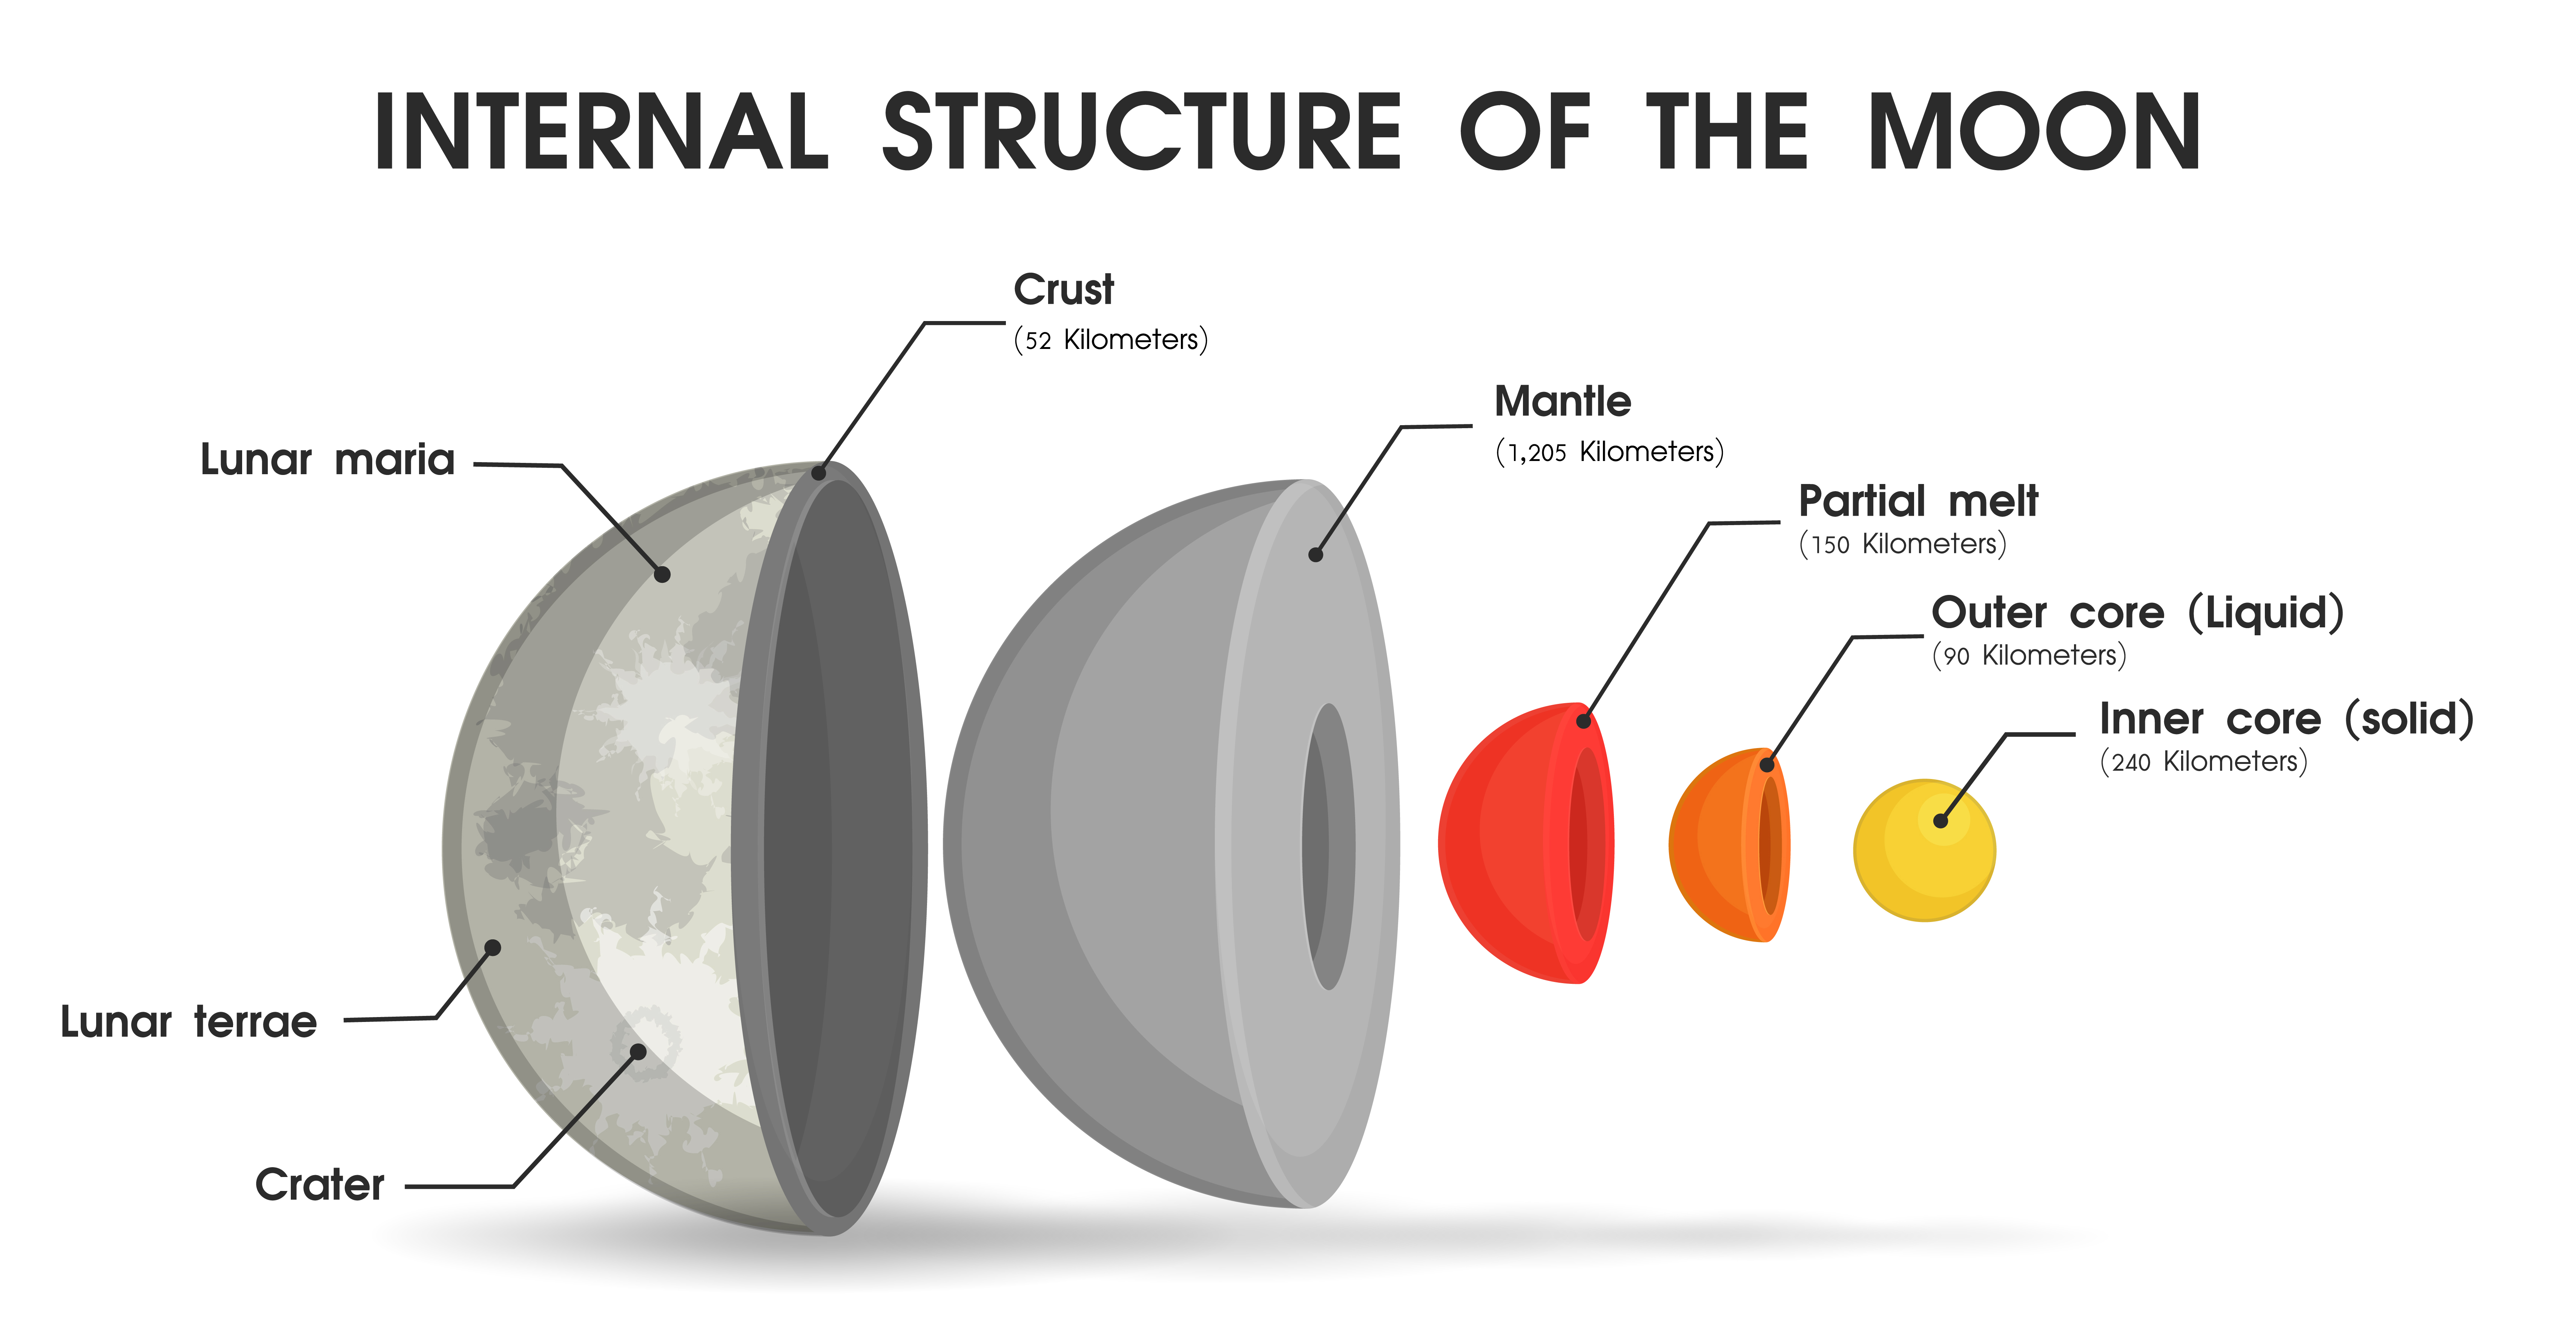 The internal structure of the moon That is divided into